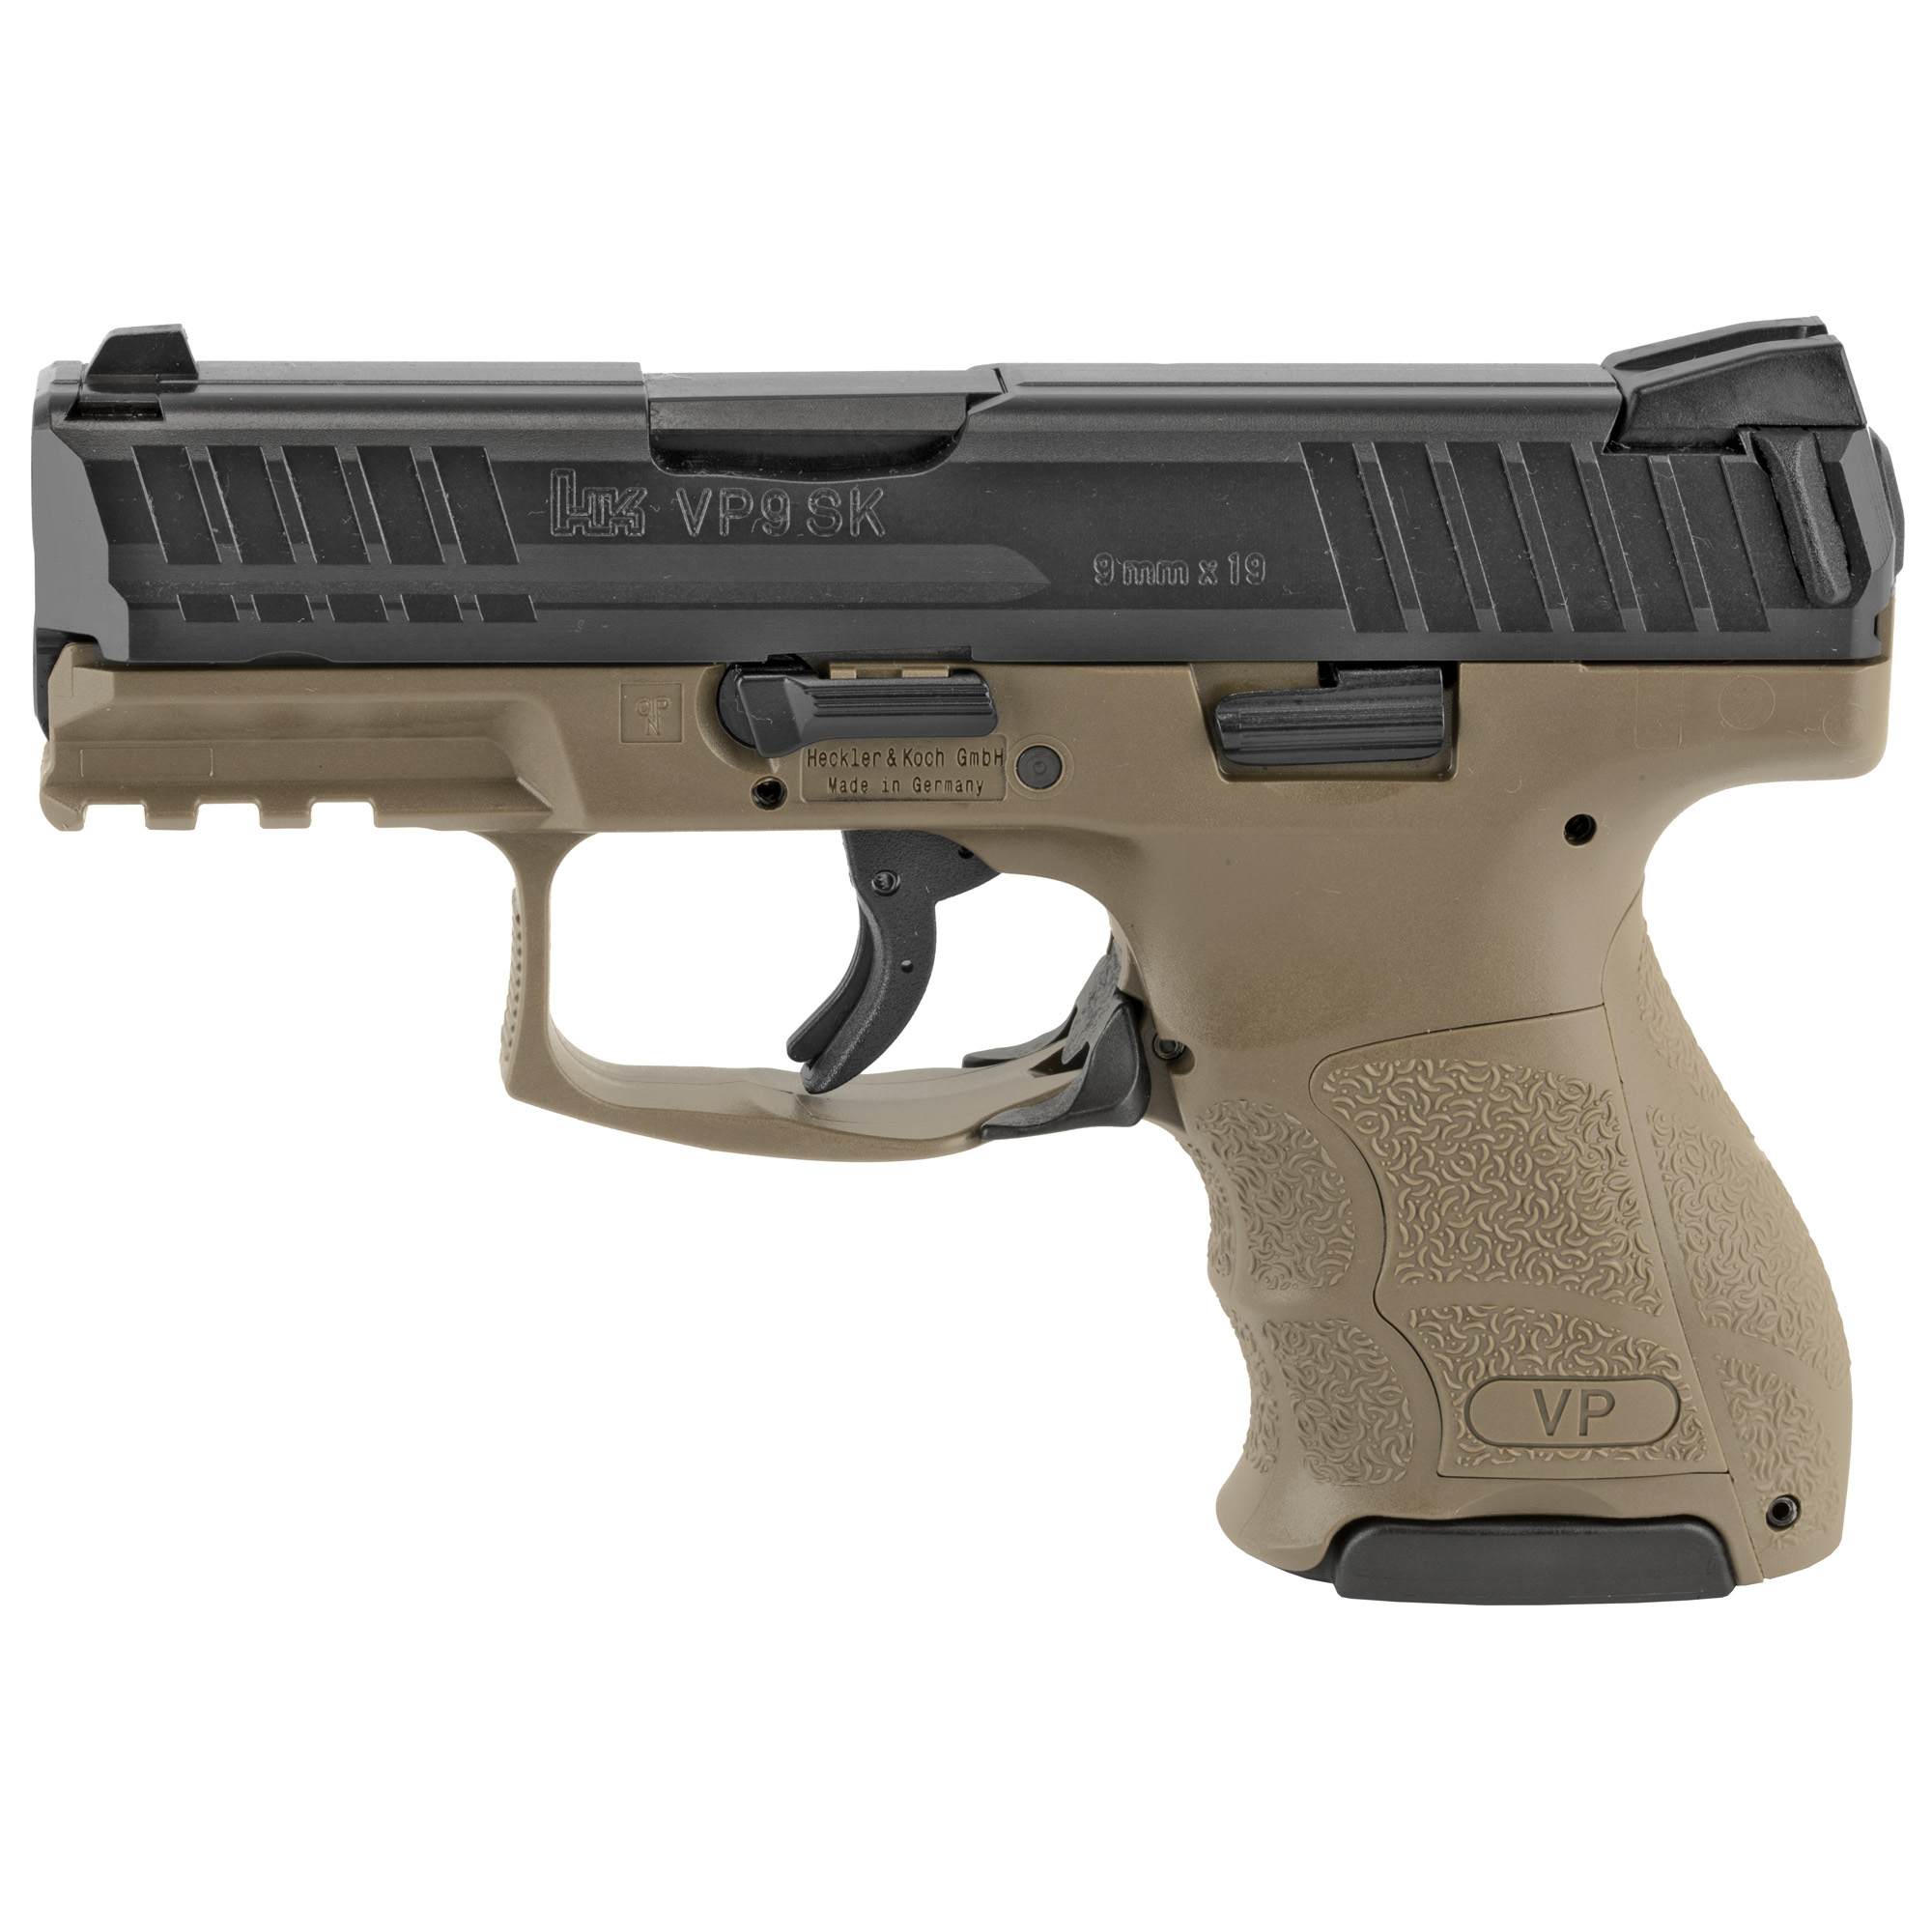 """The eagerly anticipated subcompact model of the acclaimed Heckler & Koch VP Series handgun"""" VP9SK (in 9 mm) has all of the sought-after characteristics of larger frame VP pistols but in a more concealable design. The VPSK has features of the latest"""" state-of-the-art handgun. All controls are completely ambidextrous. Slide releases are present on both sides of the frame and the paddle style magazine release can be easily activated by left- or right-handed shooters."""